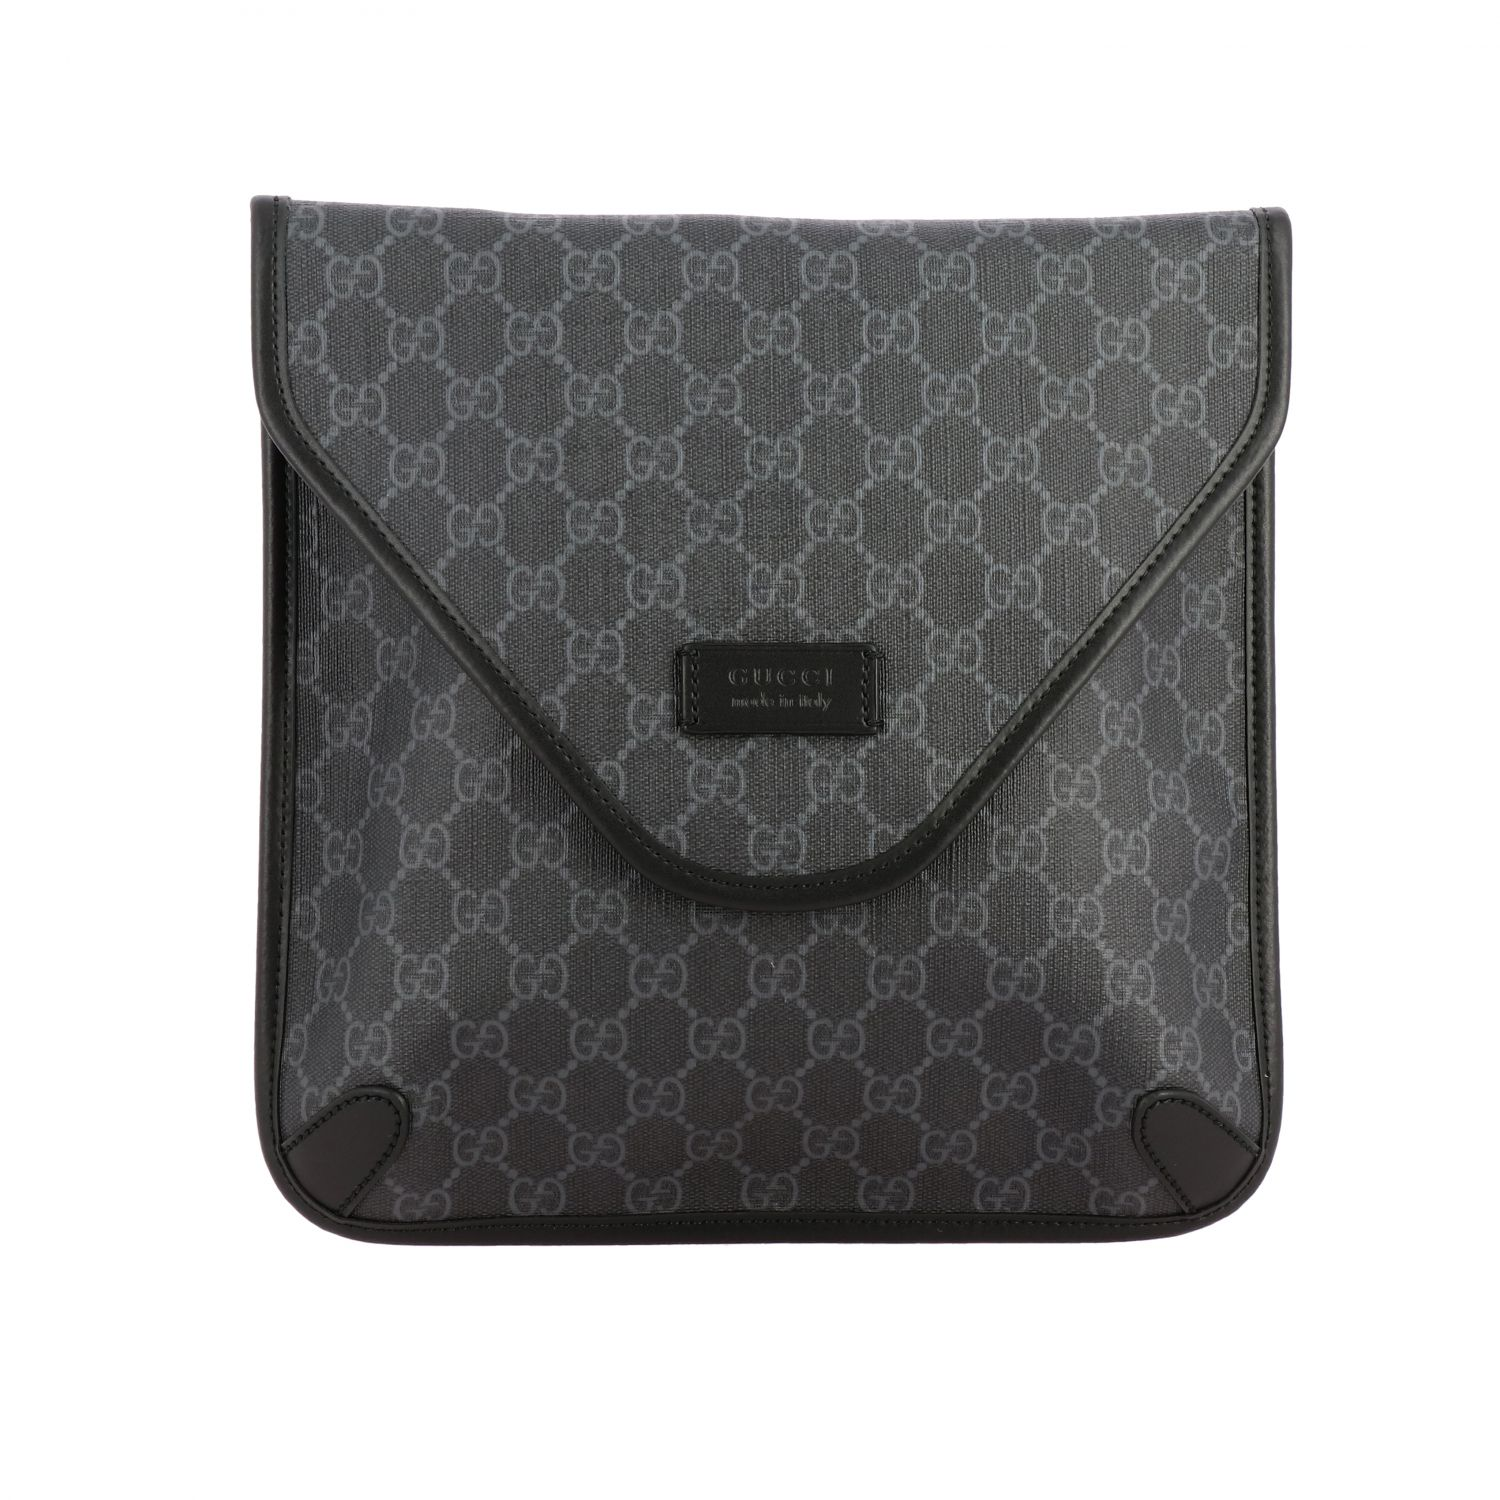 Bags men Gucci black 1